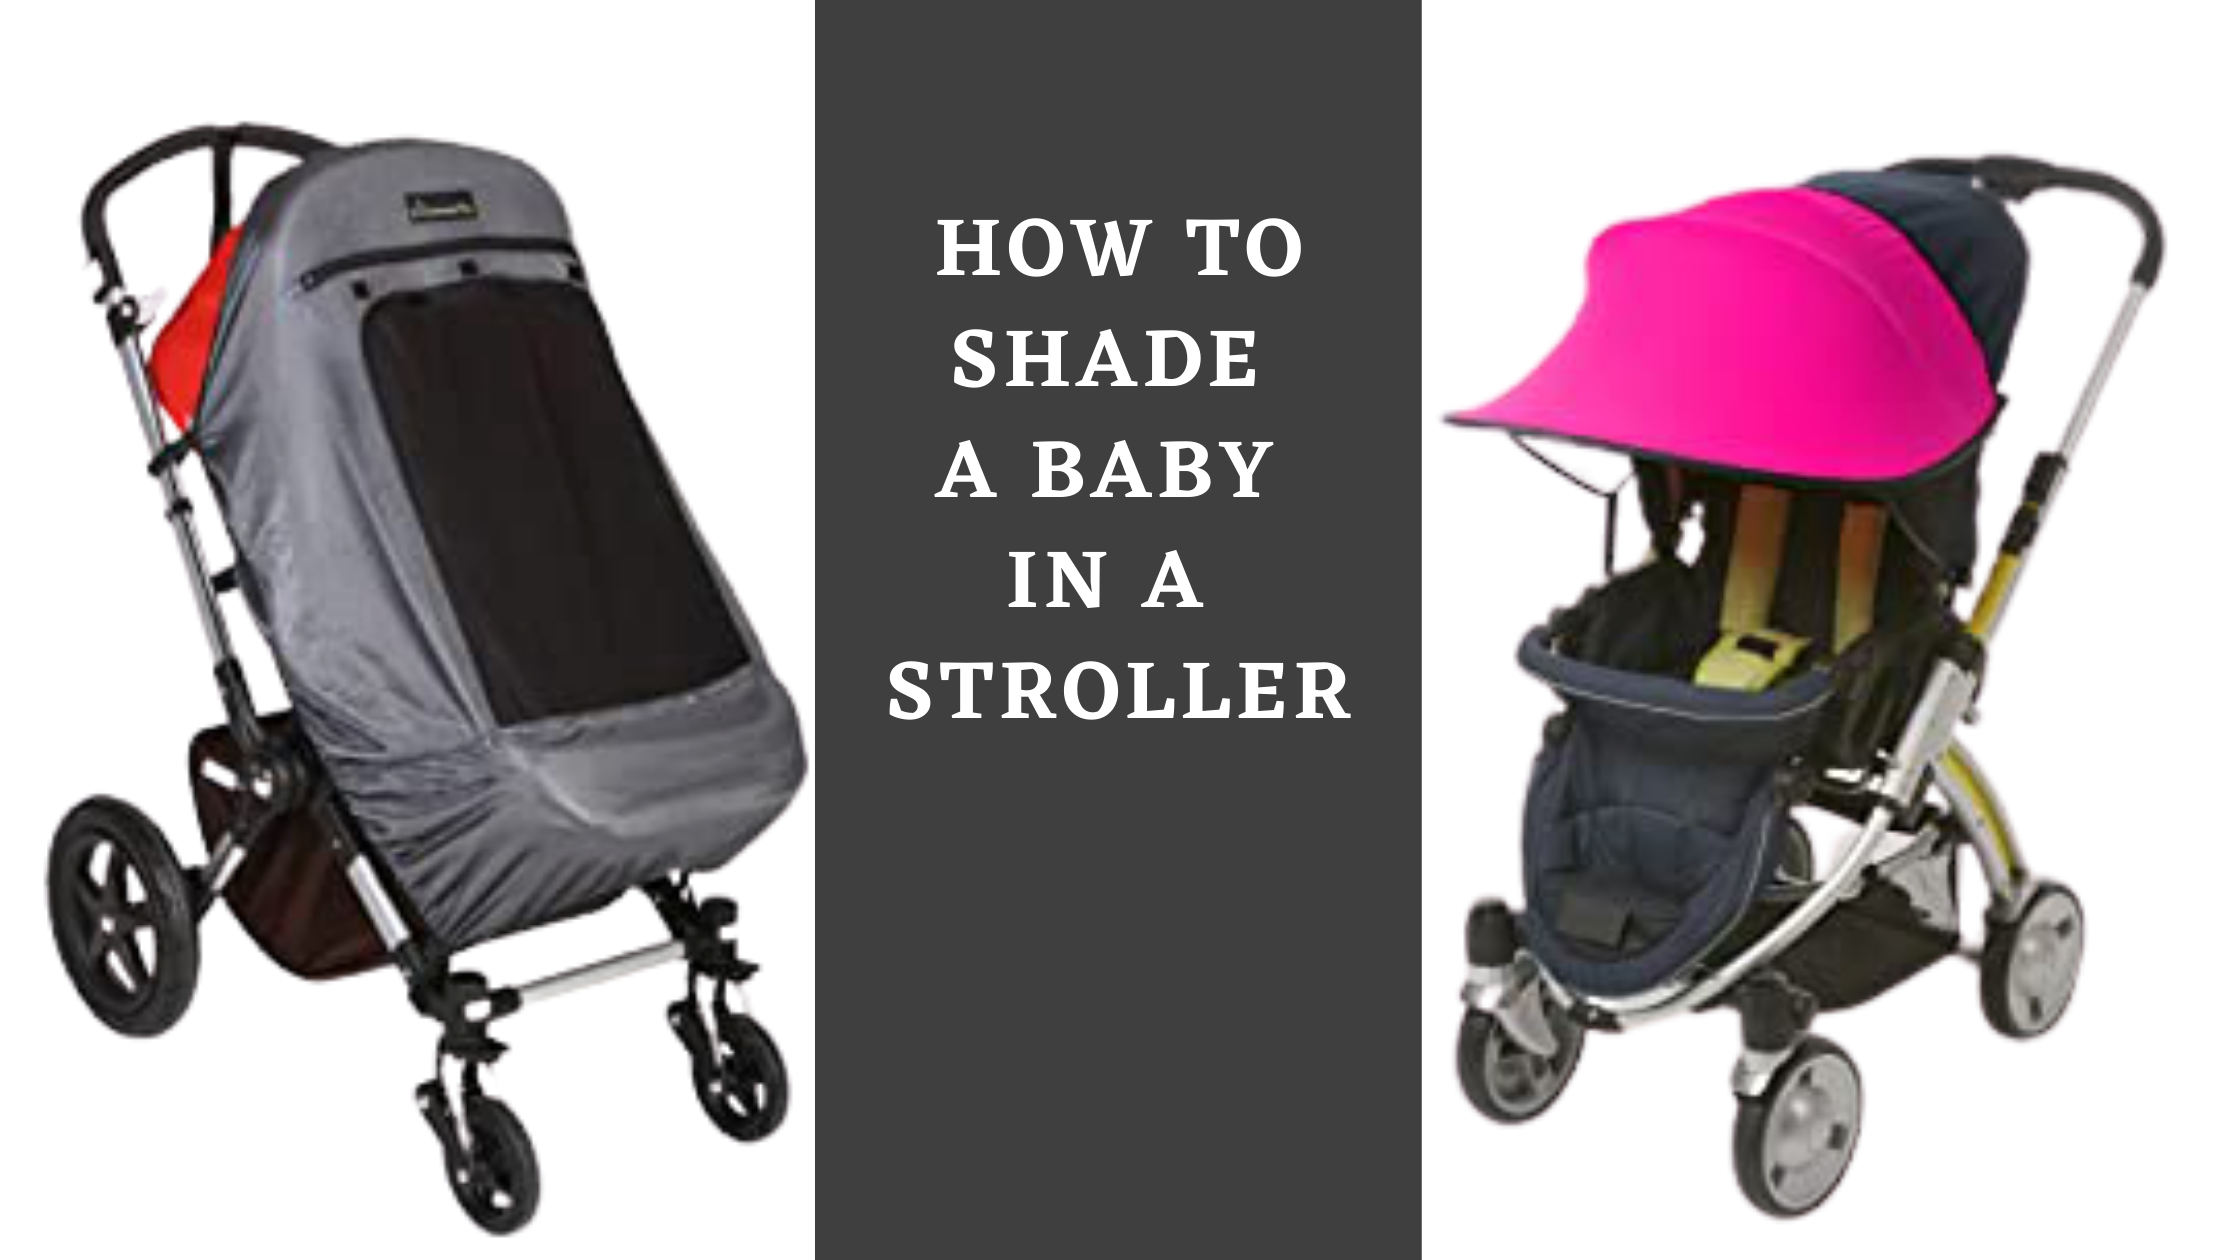 How to Shade a baby in a stroller